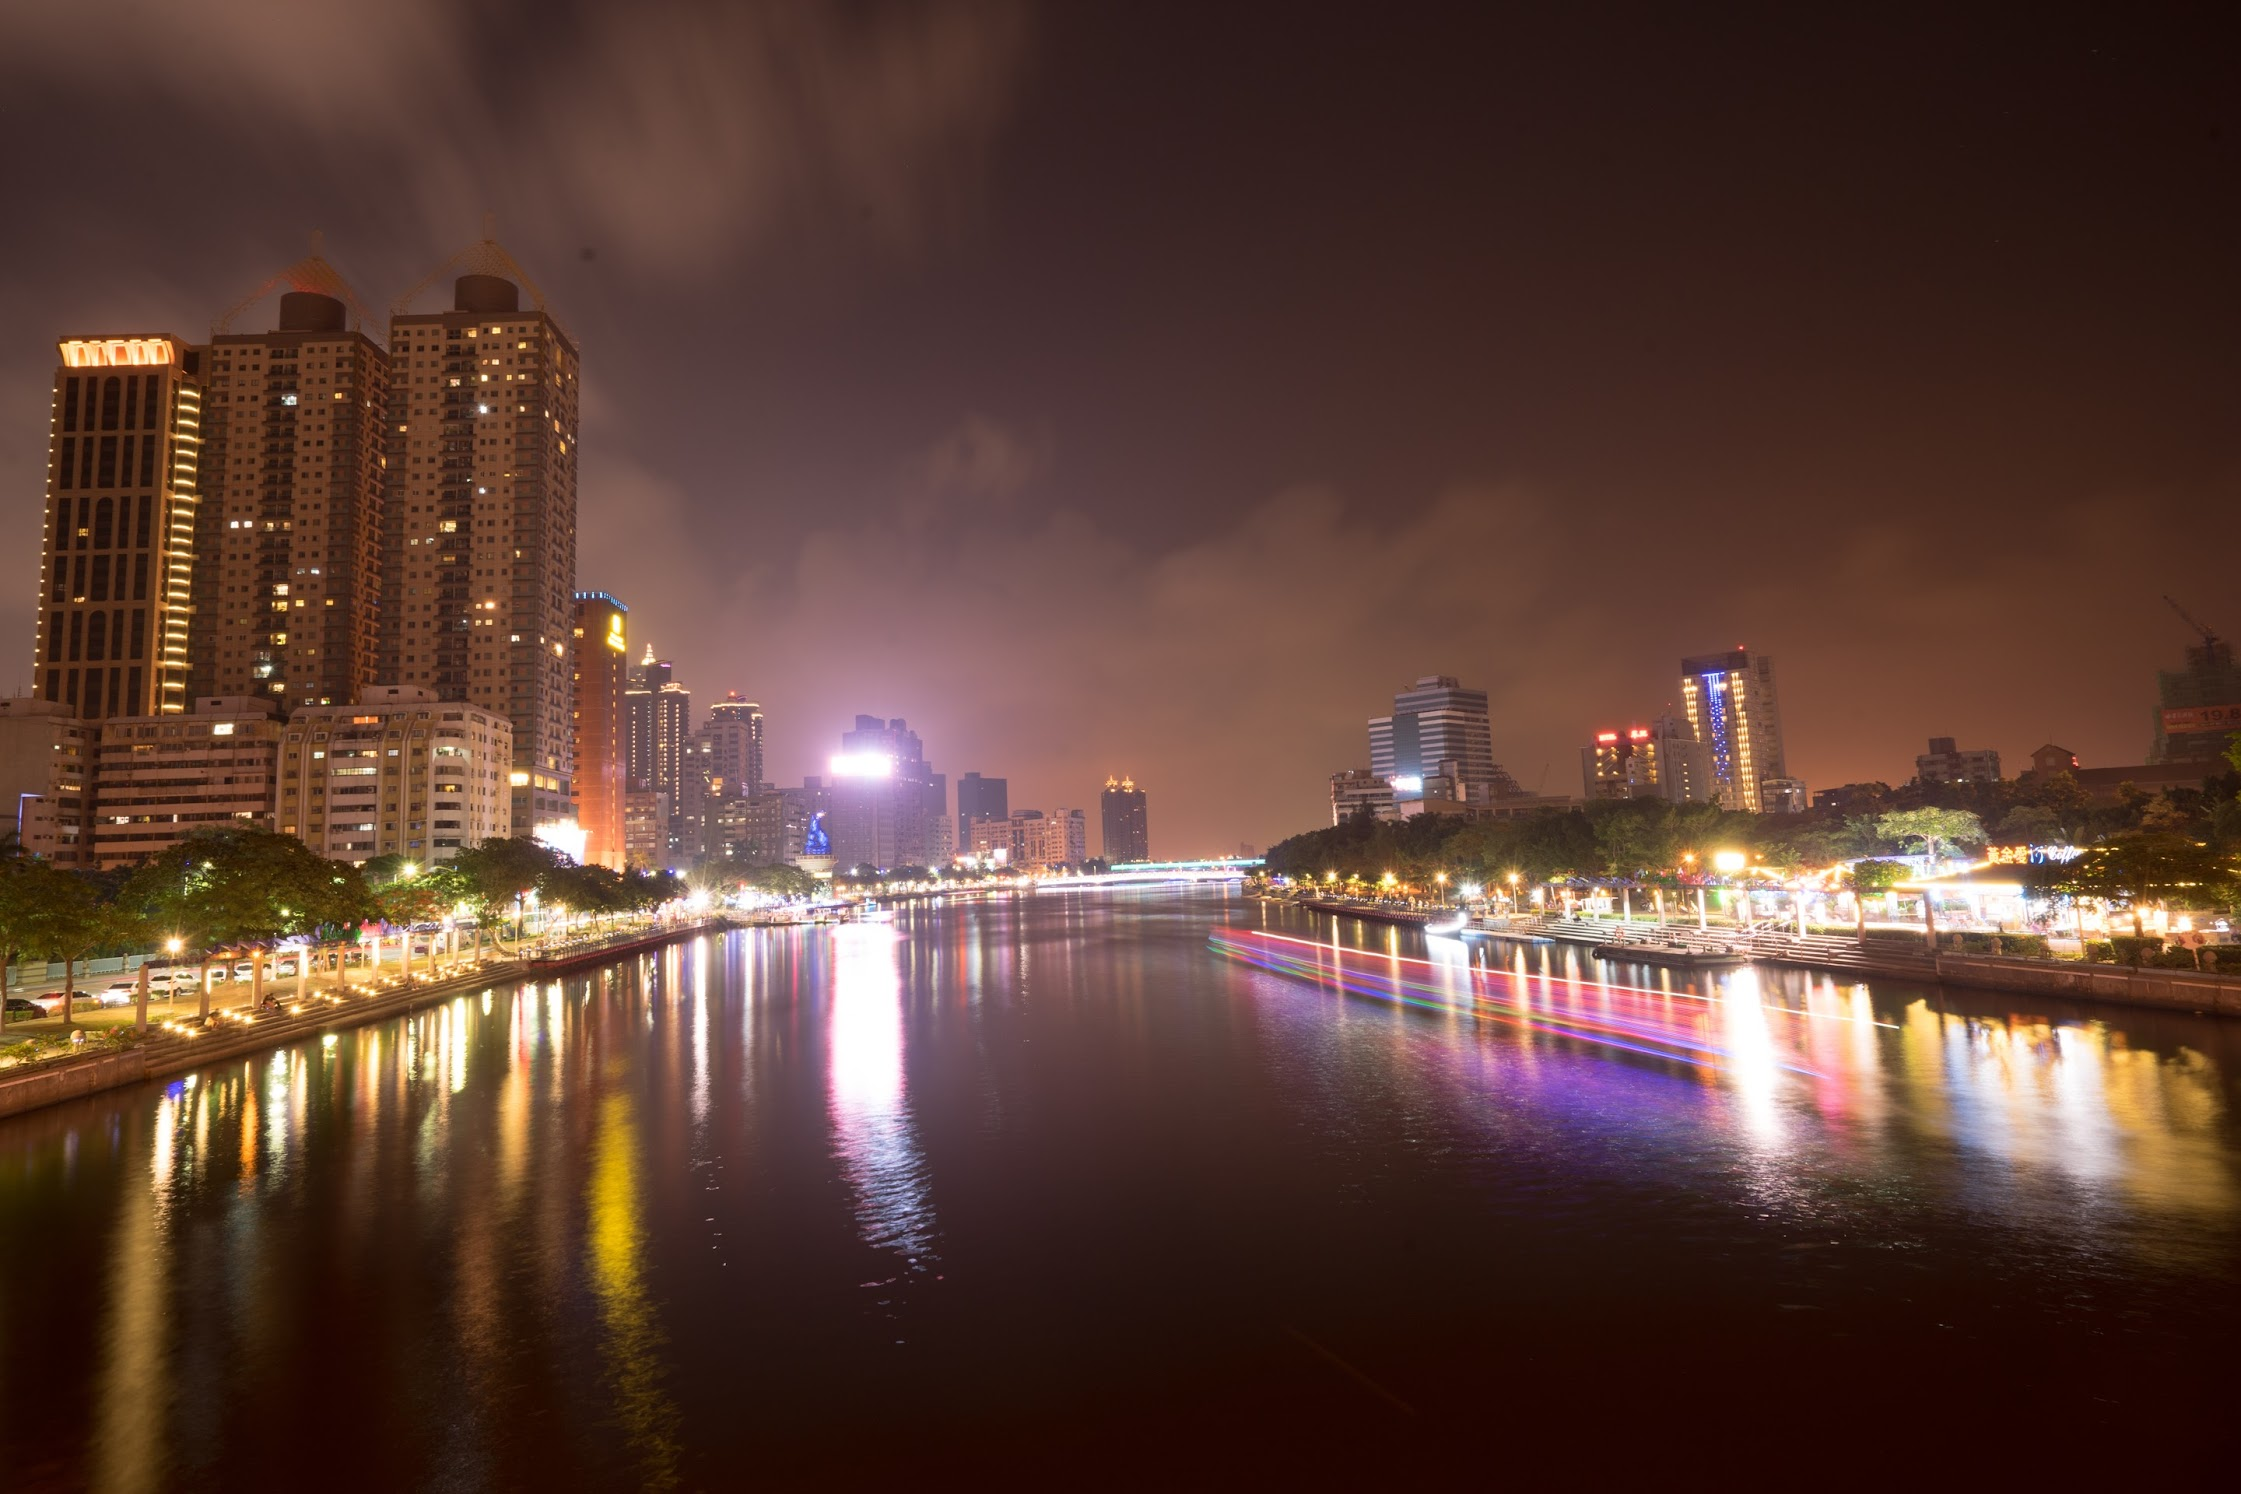 Taiwan Kaohsiung Love River evening view4